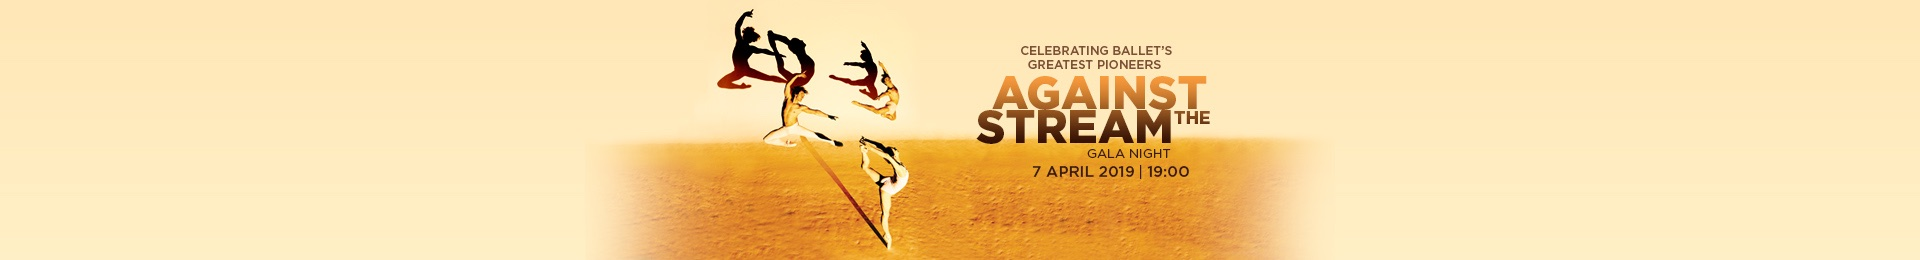 Against the Stream banner image